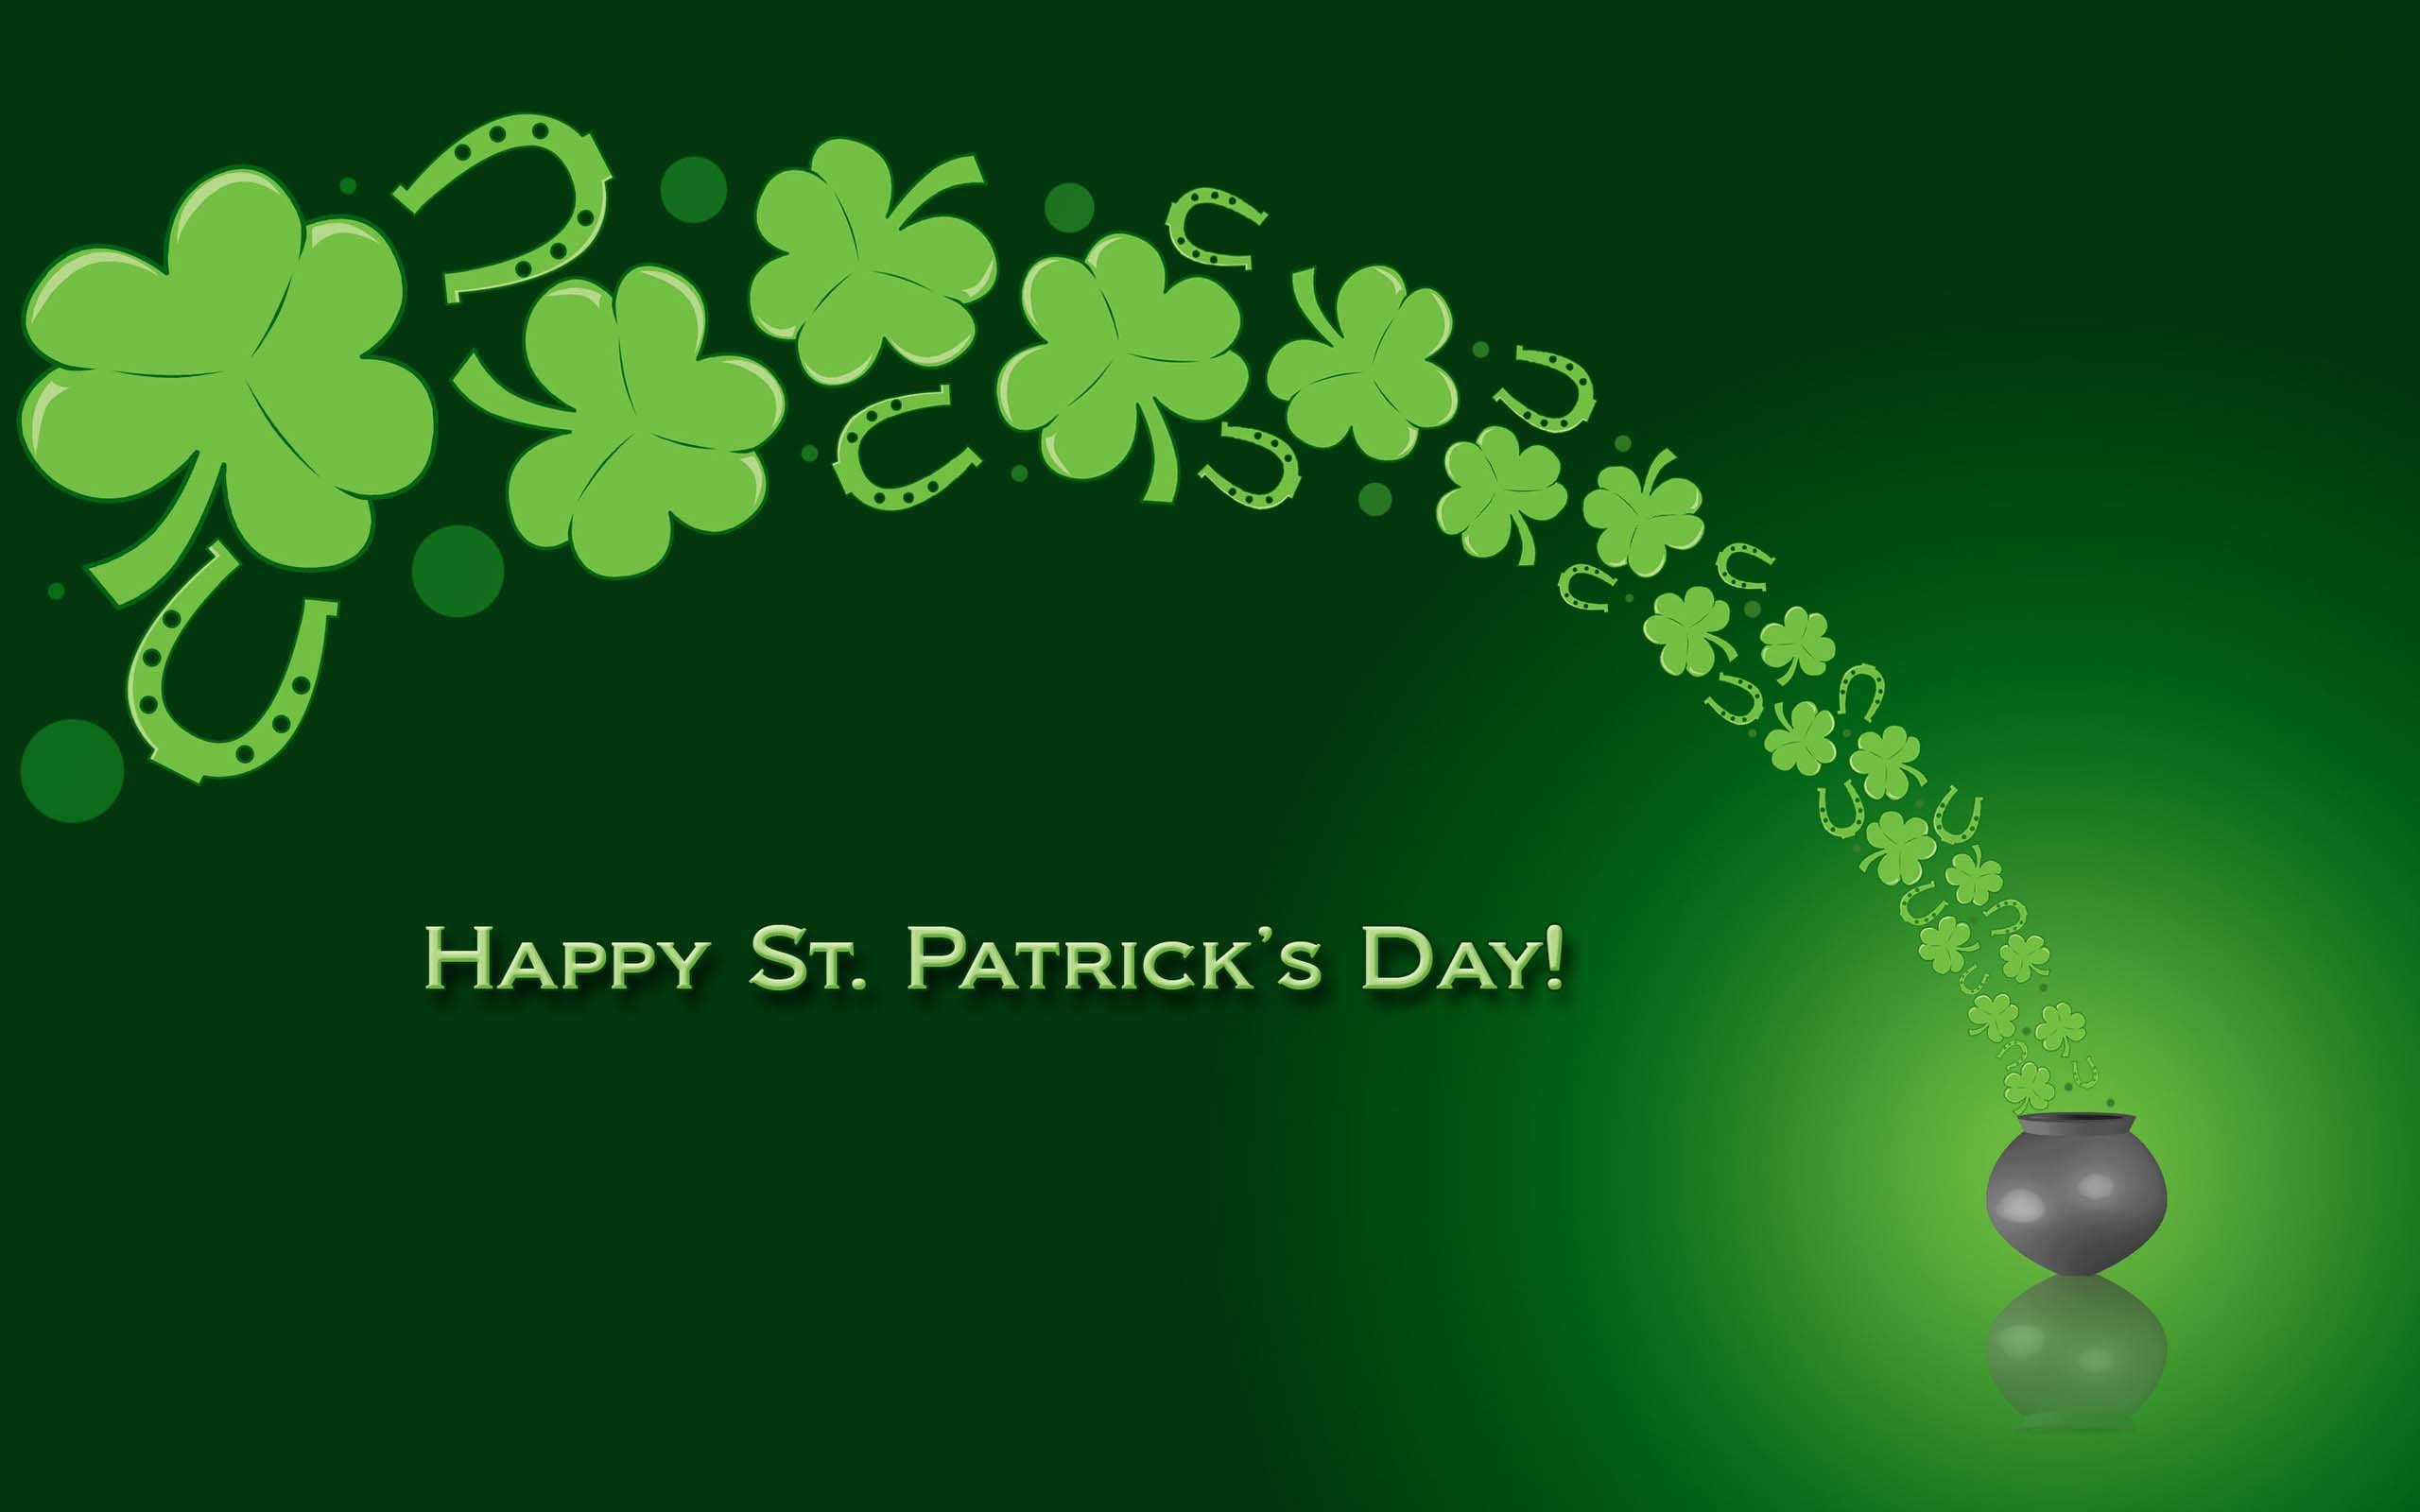 St Patricks Day Wallpapers HD.